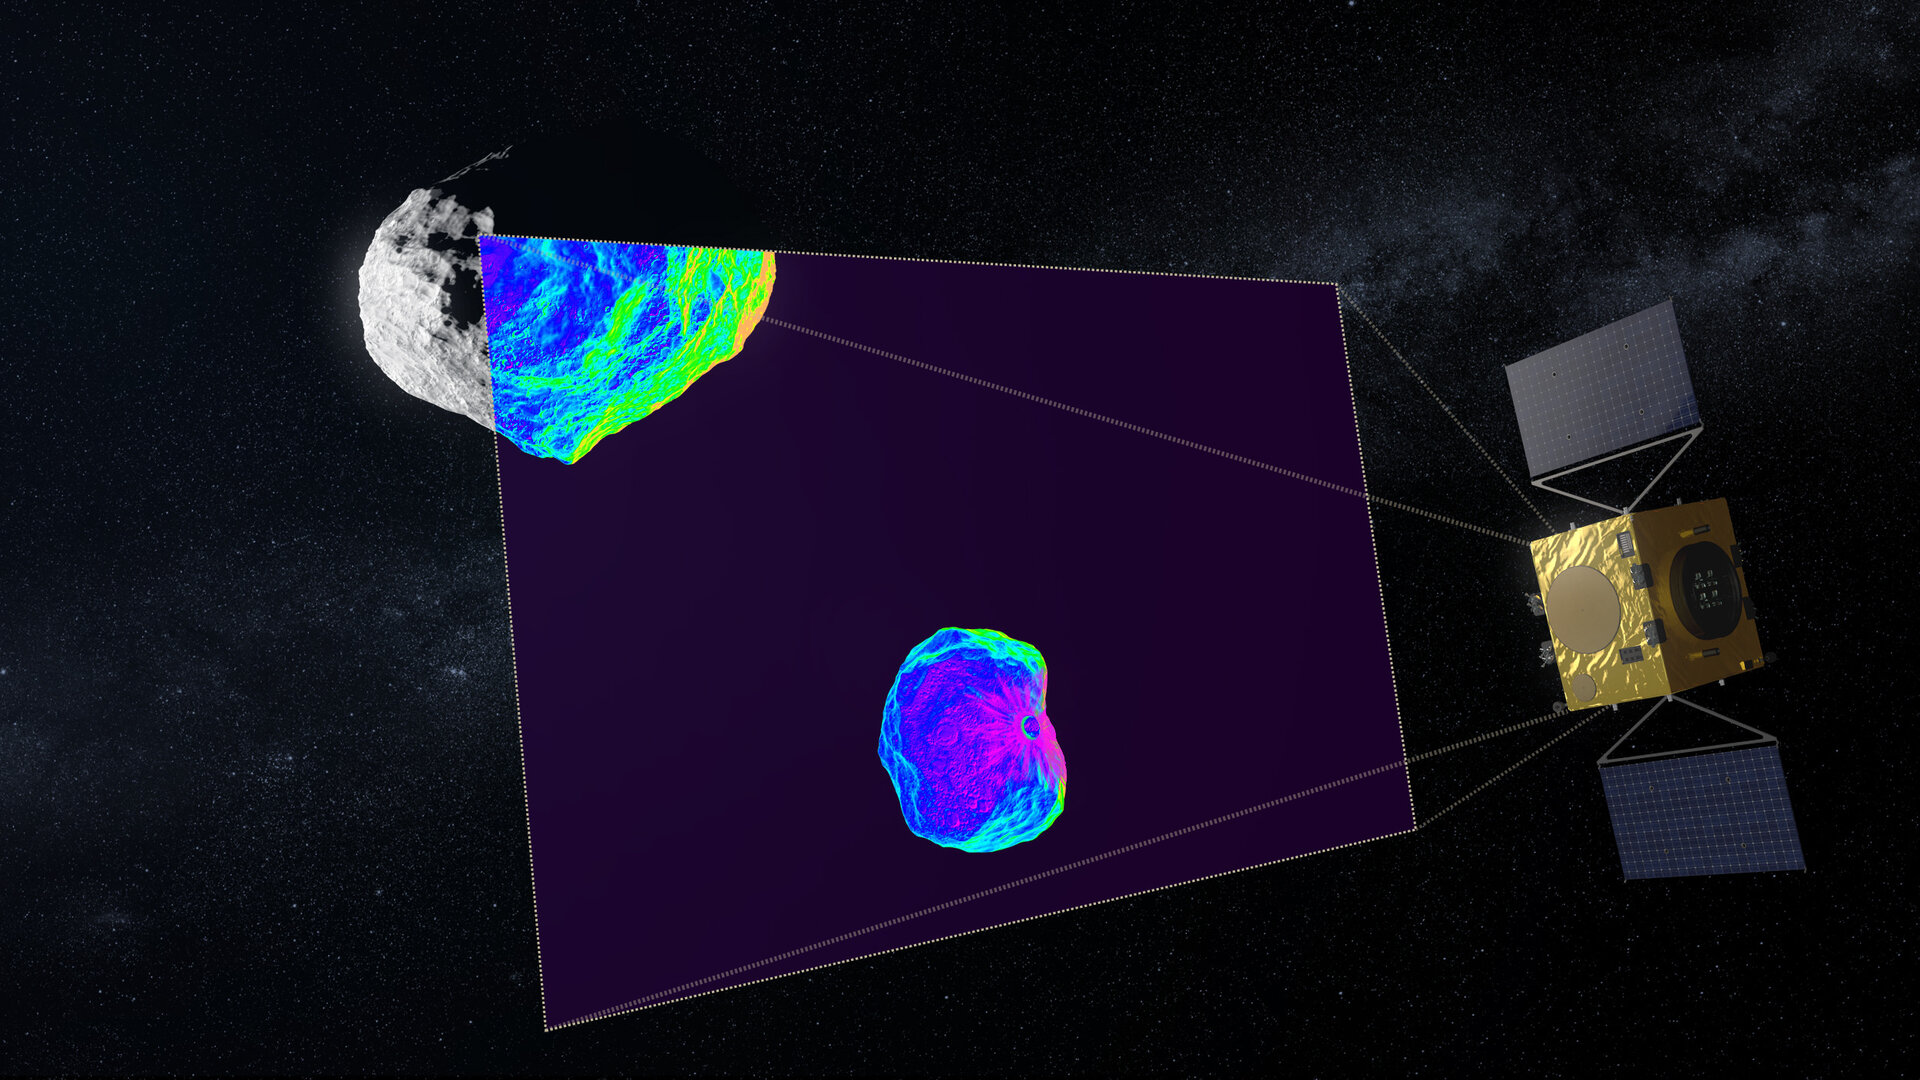 Infrared imaging of asteroids